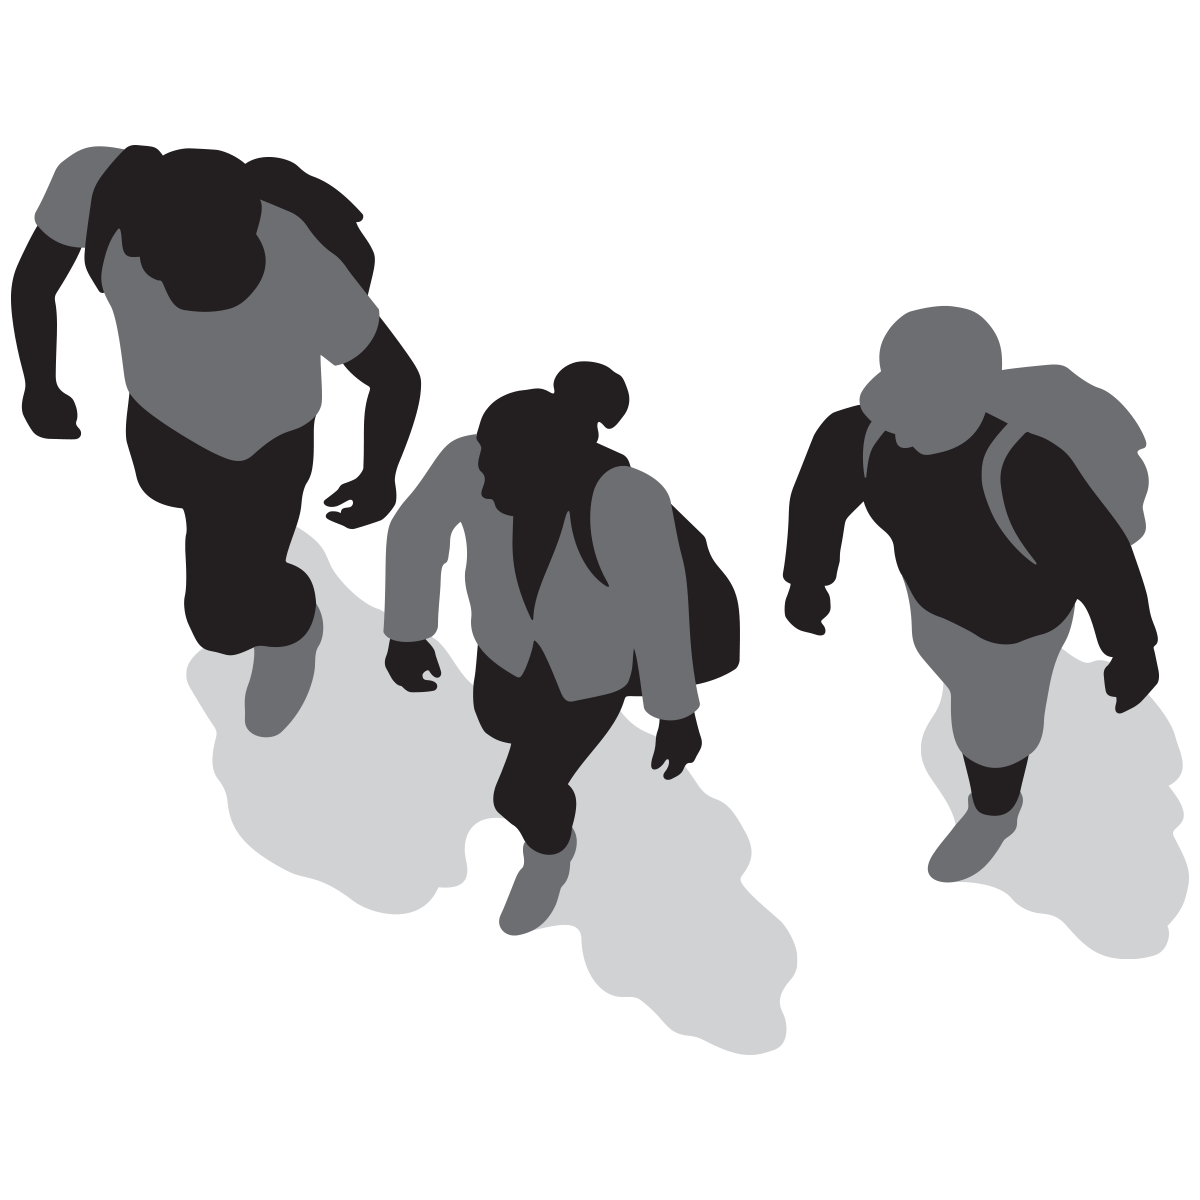 Walk to school clipart black and white picture black and white download Walk To School PNG Black And White Transparent Walk To School Black ... picture black and white download